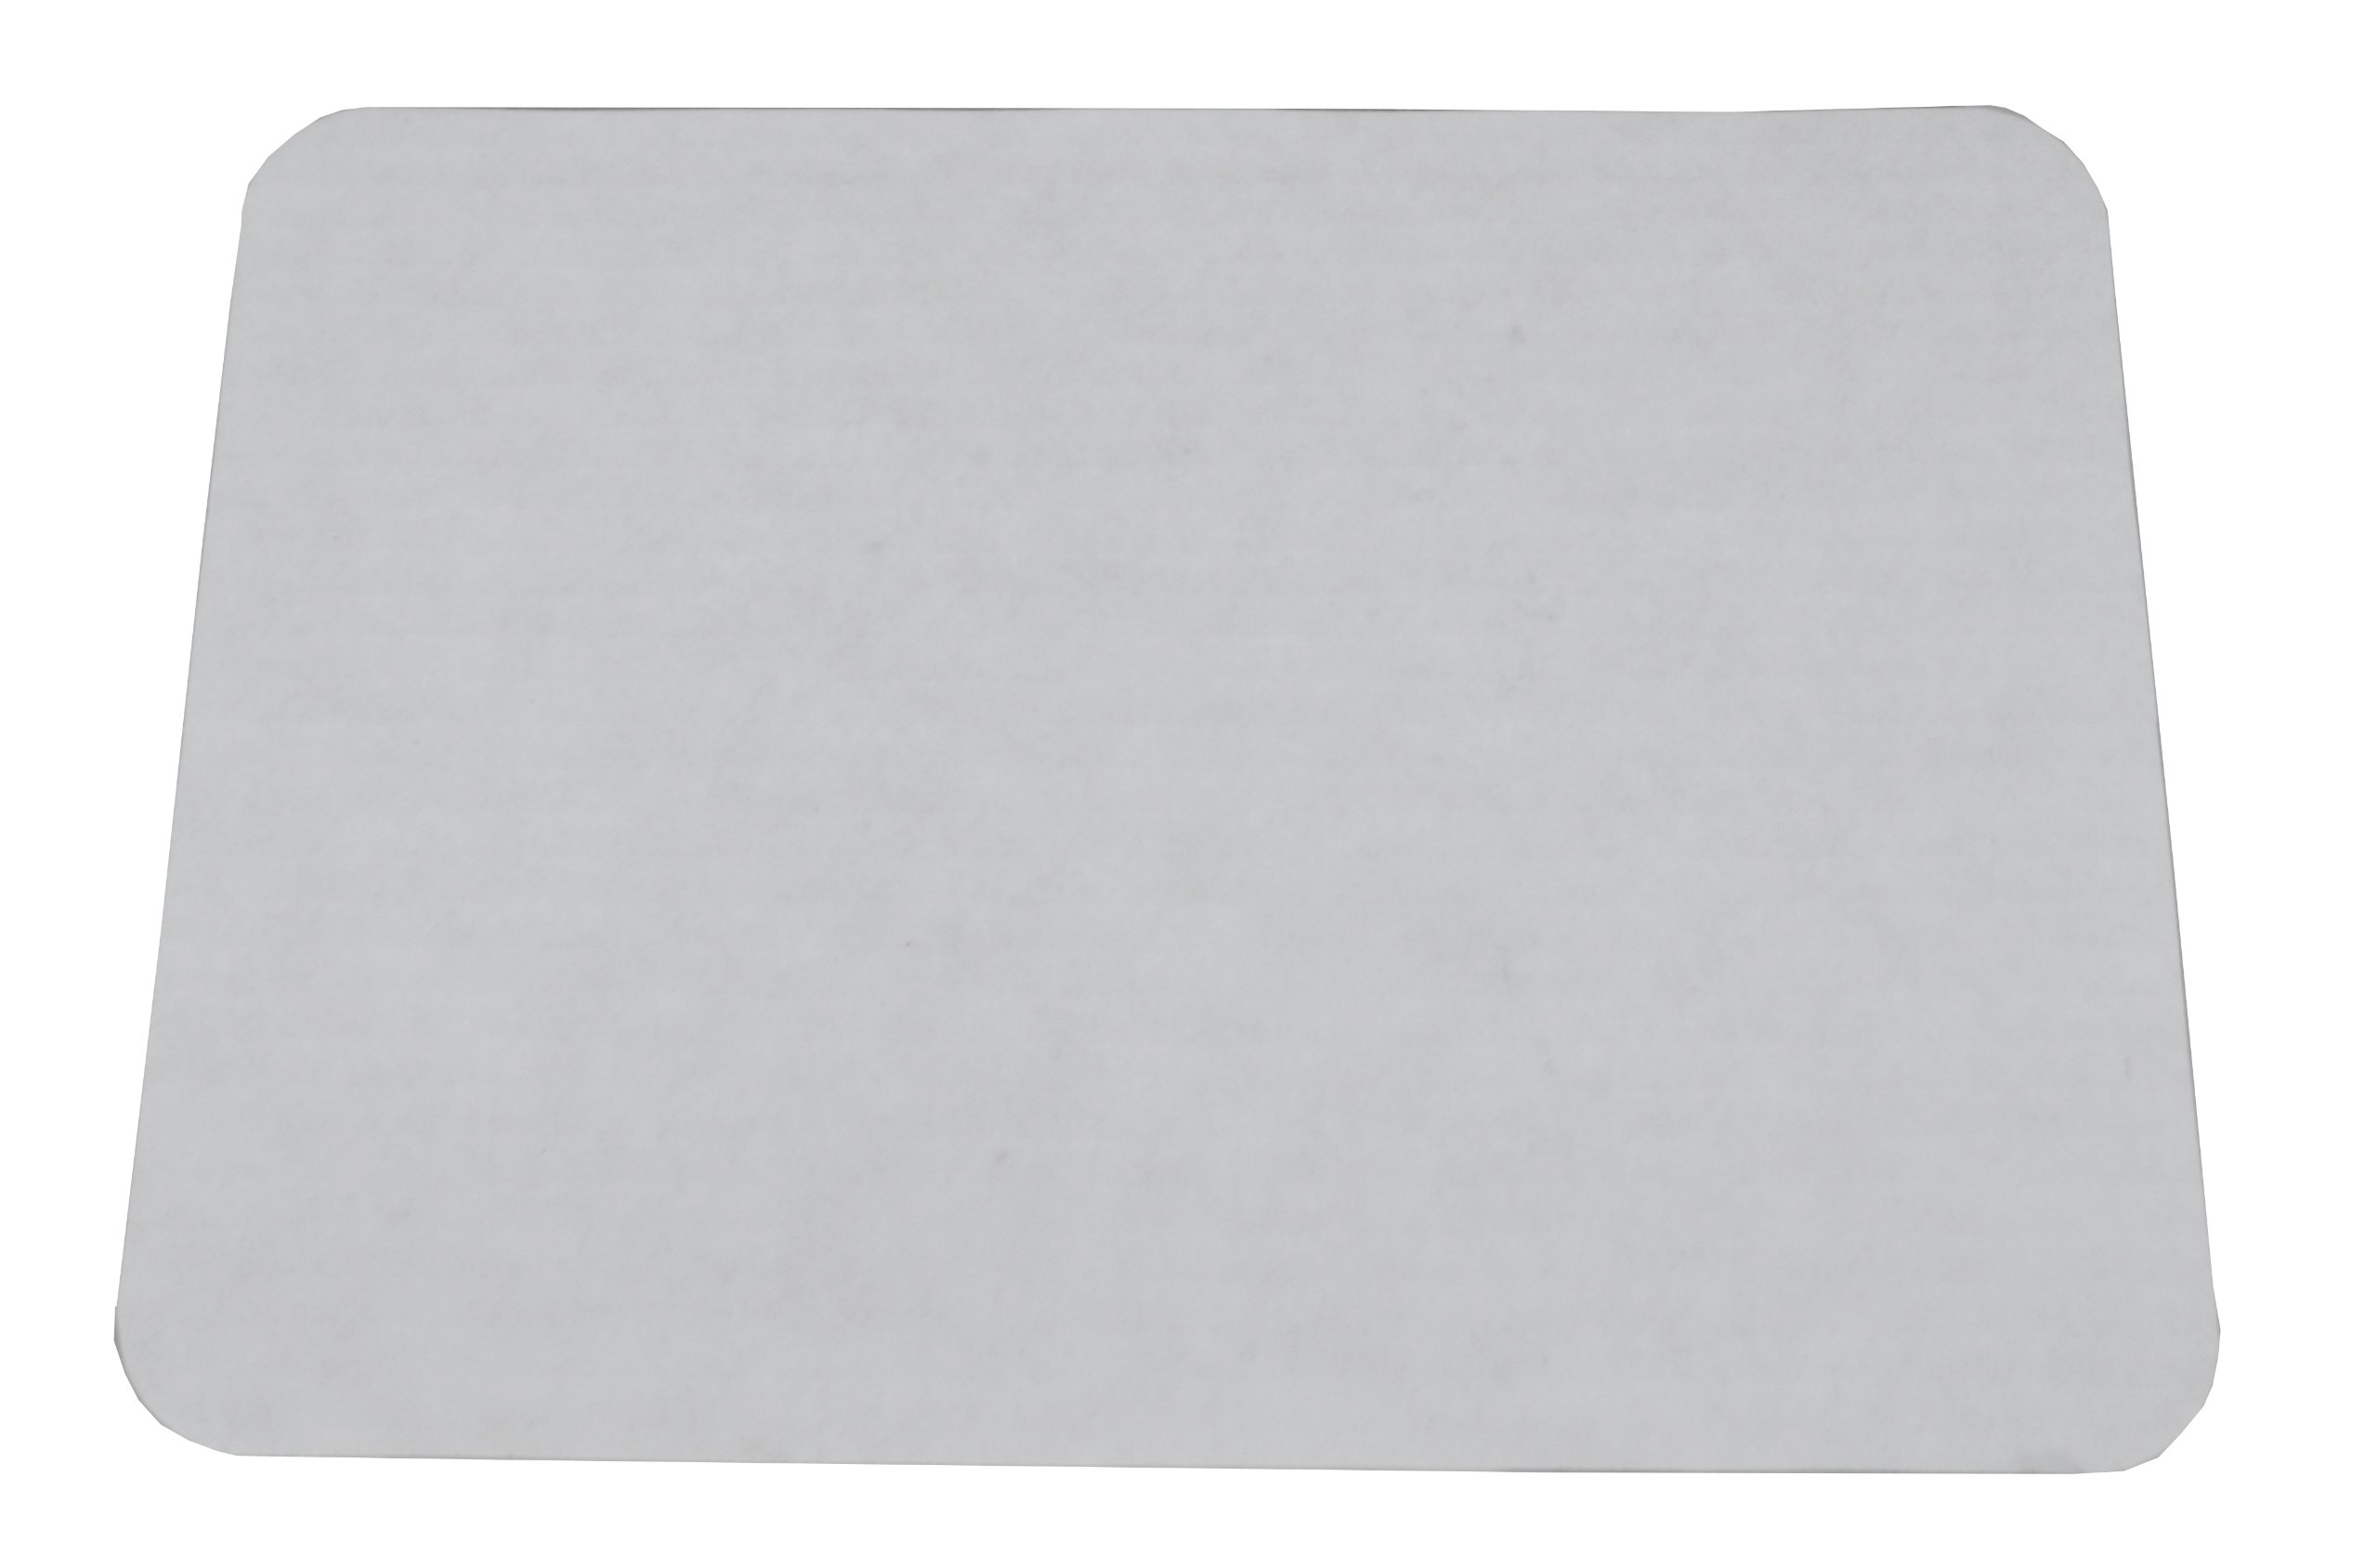 Southern Champion Tray 11949 Corrugated Uncoated Single Wall Cake Pad, Quarter Sheet, 14'' L x 10'' W, Mottled White (Case of 100)